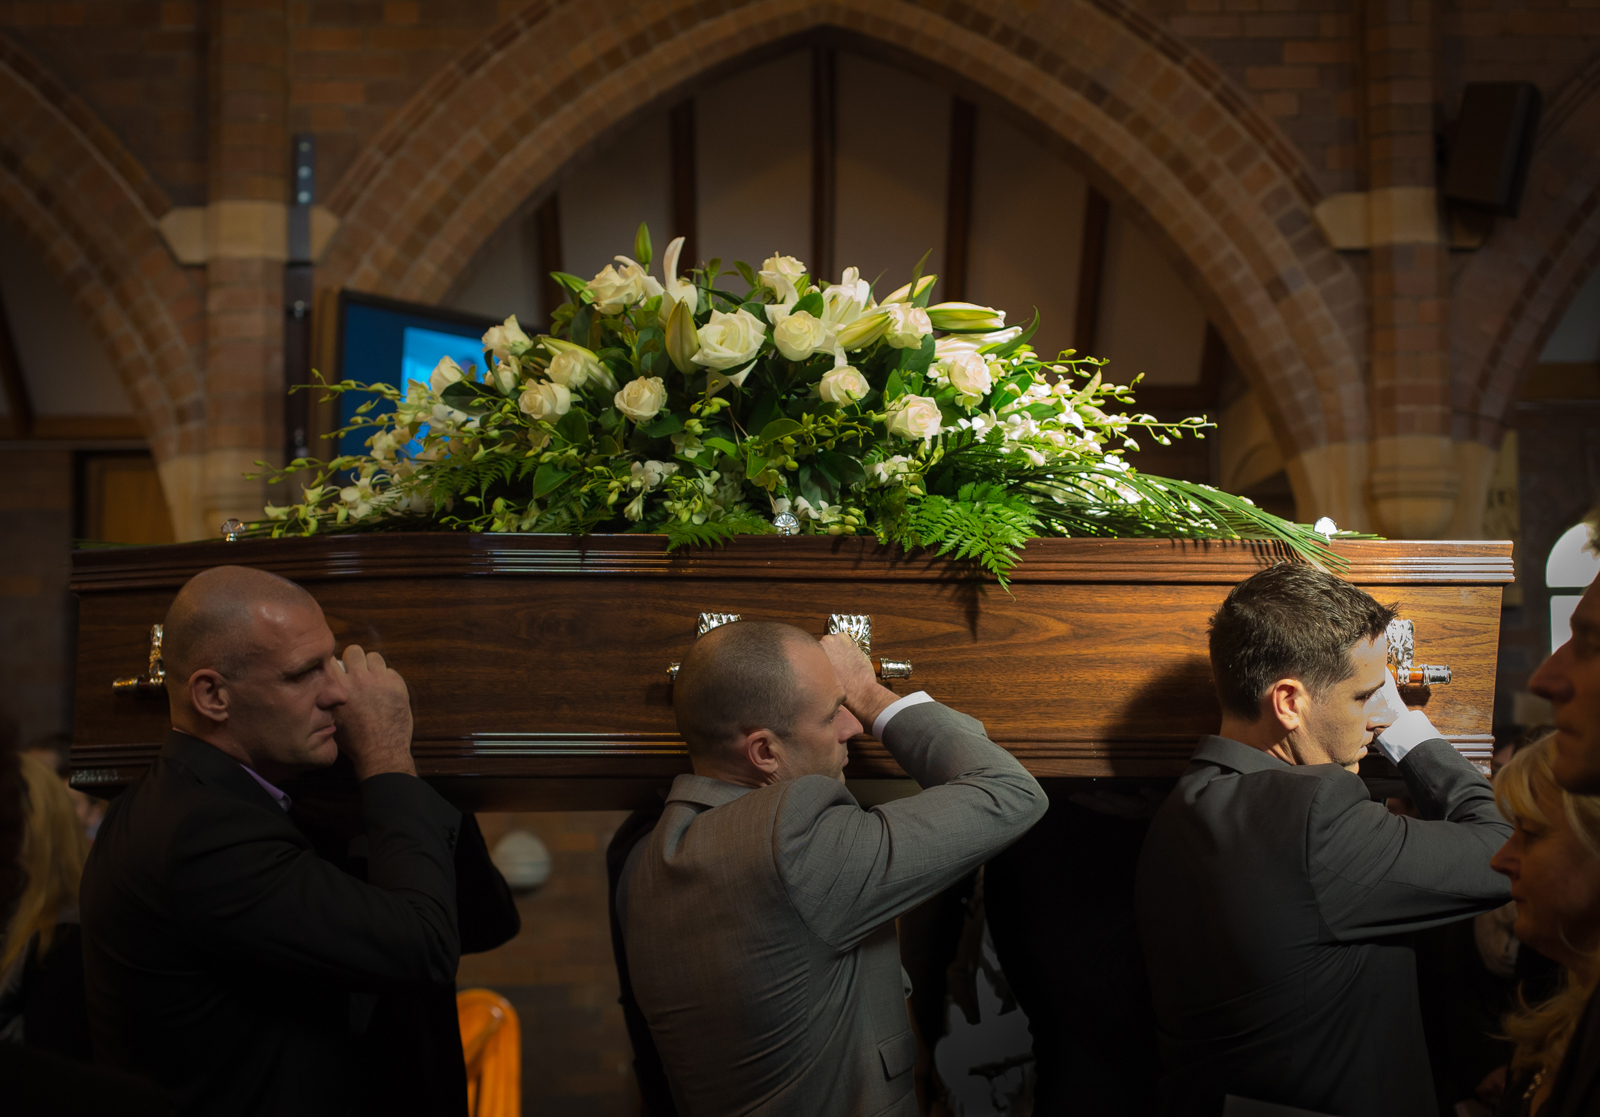 Grief - my brother's coffin is carried from the church